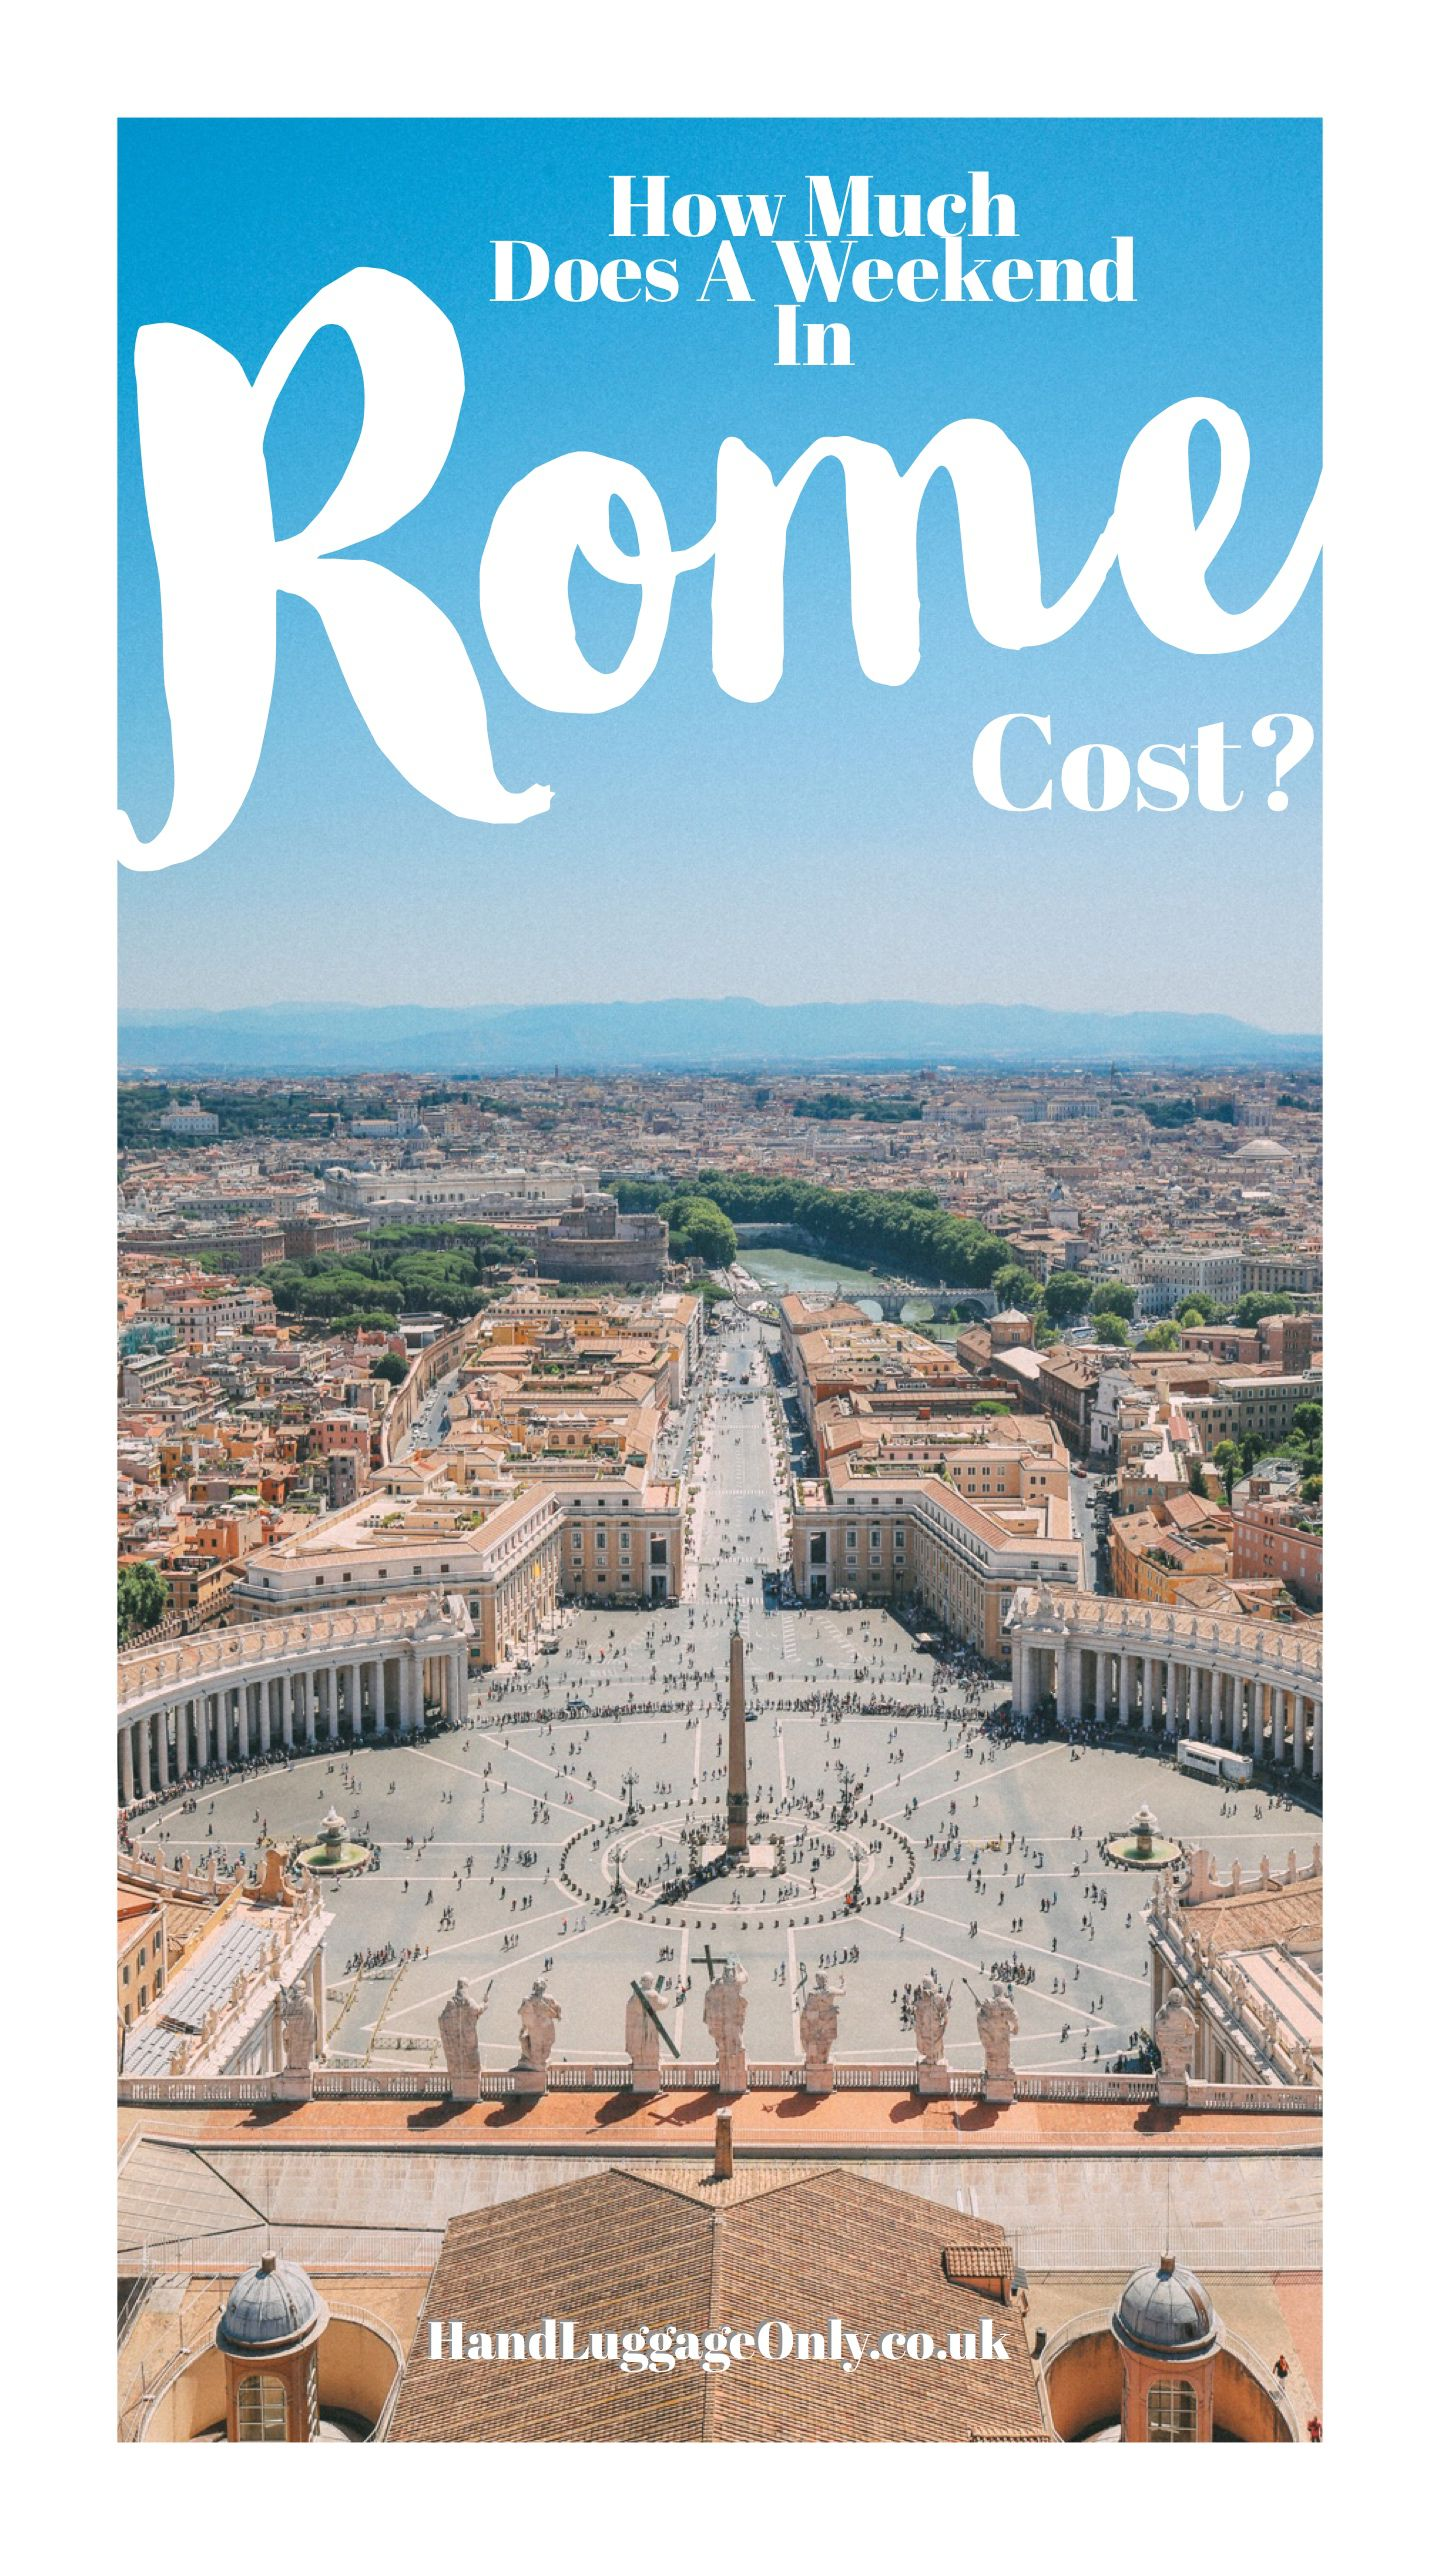 How Much Does A Weekend In Rome Cost?